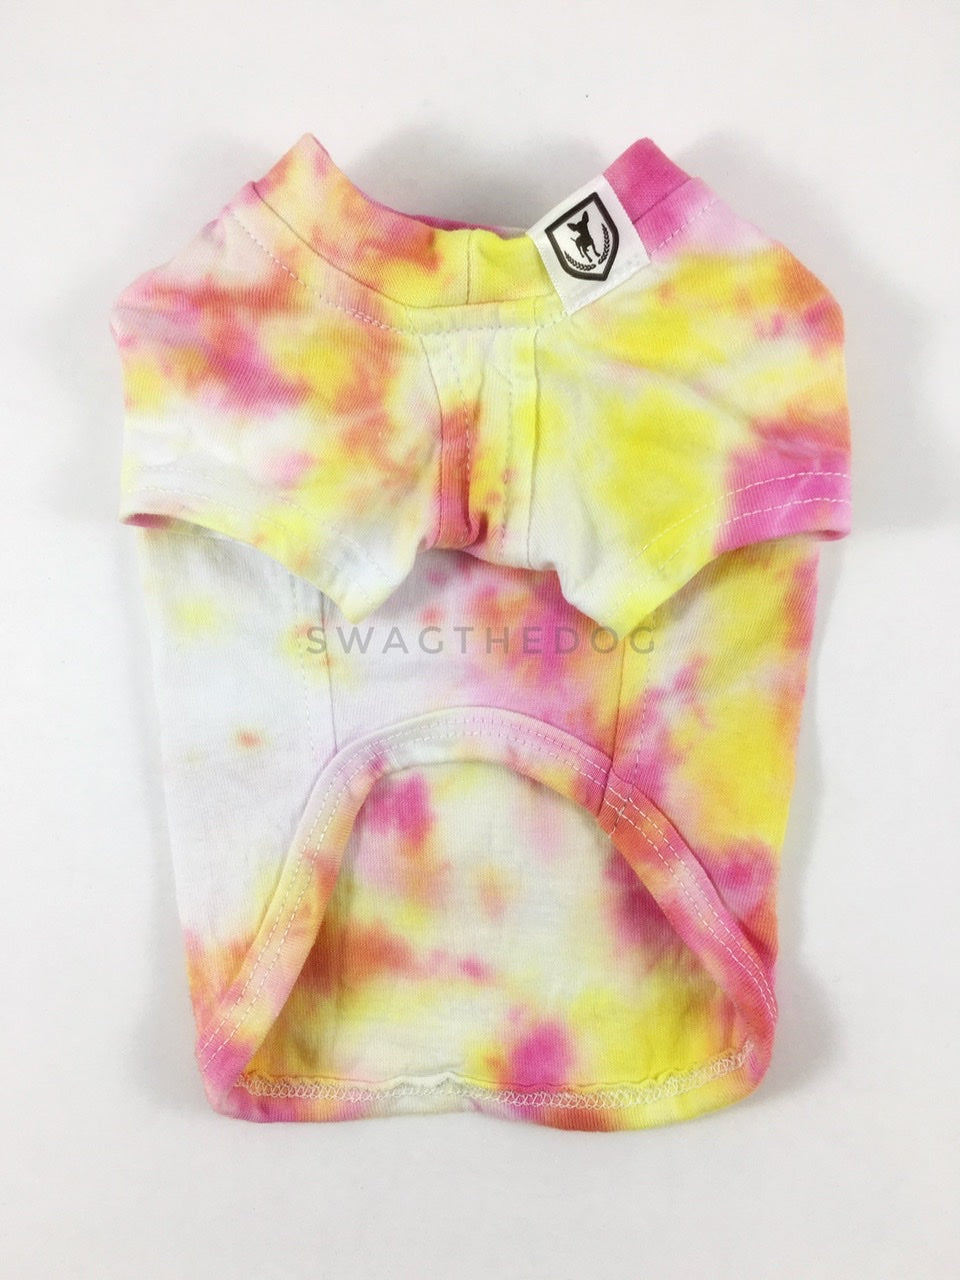 Swagadelic Cotton Candy Tie Dye Tee - Product front view. The hand tie-dyed tee with Pink and Yellow